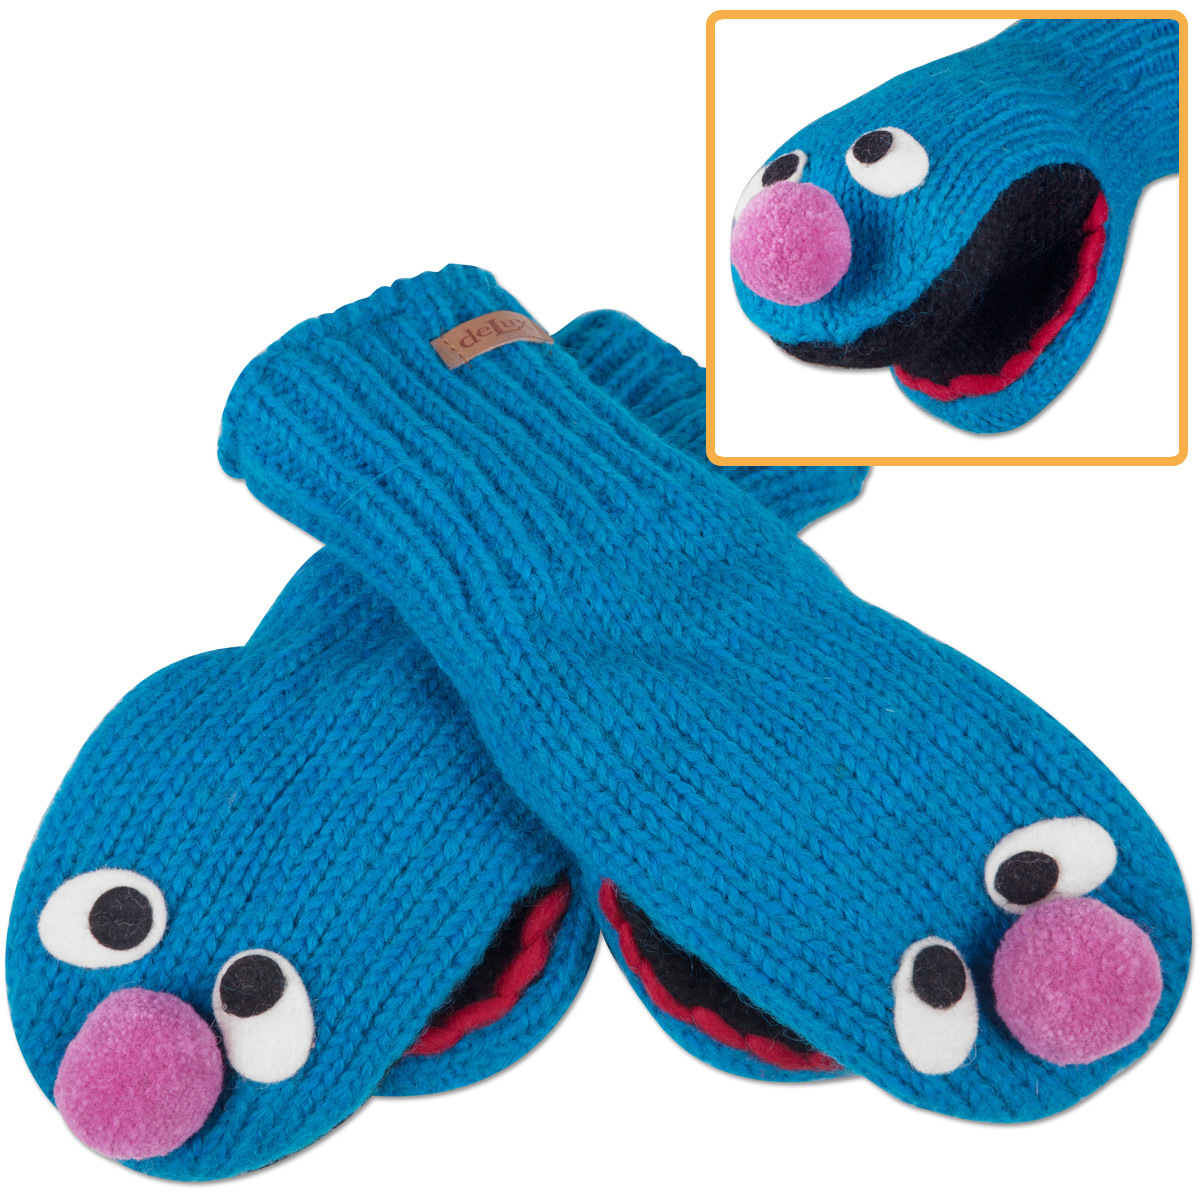 Grover Kids Mittens